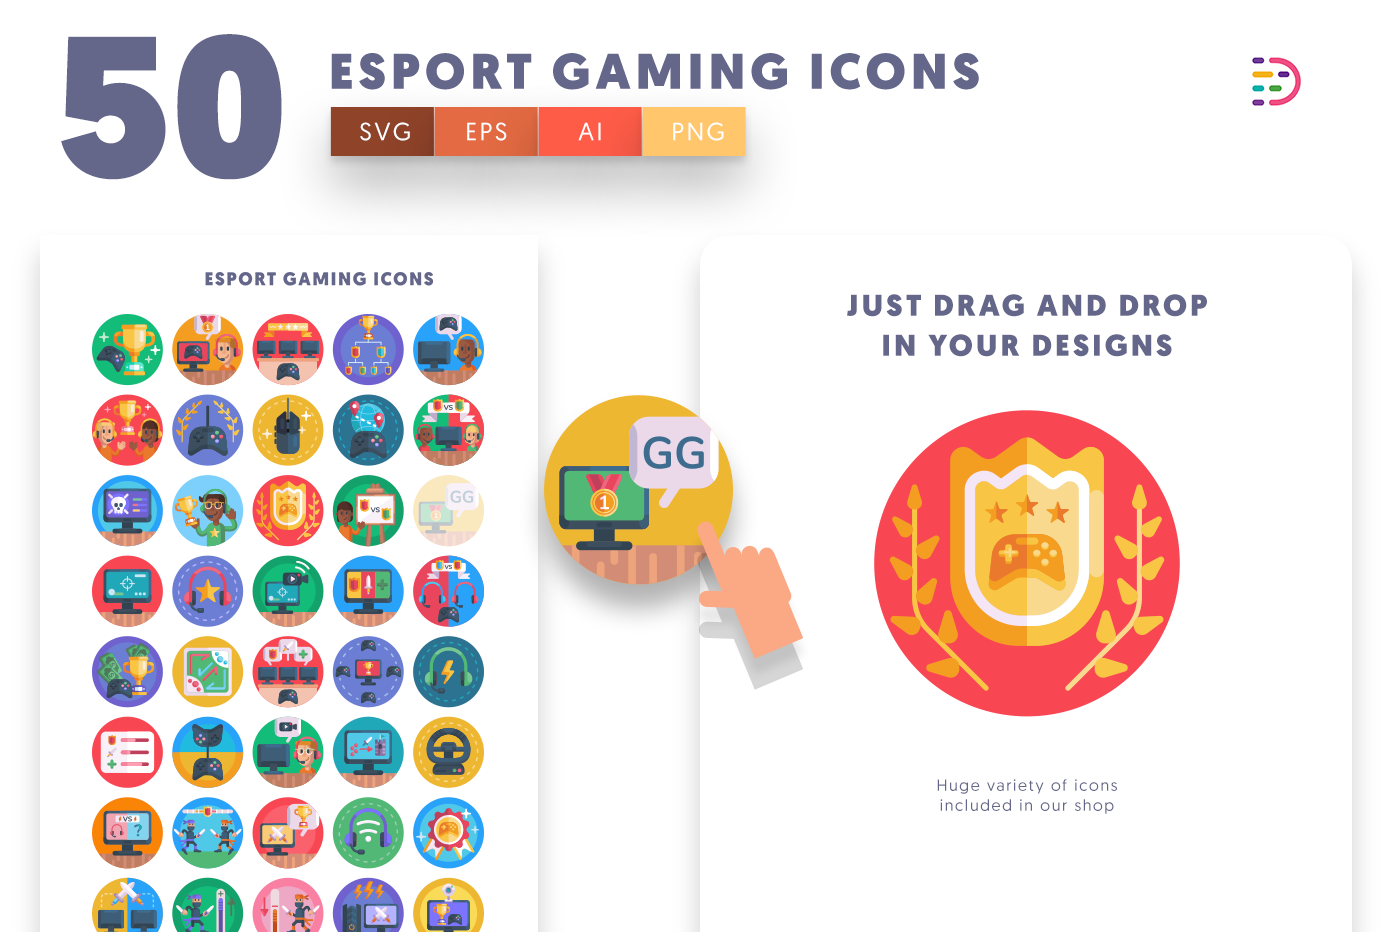 Drag and drop vector 50 Esport Gaming Icons